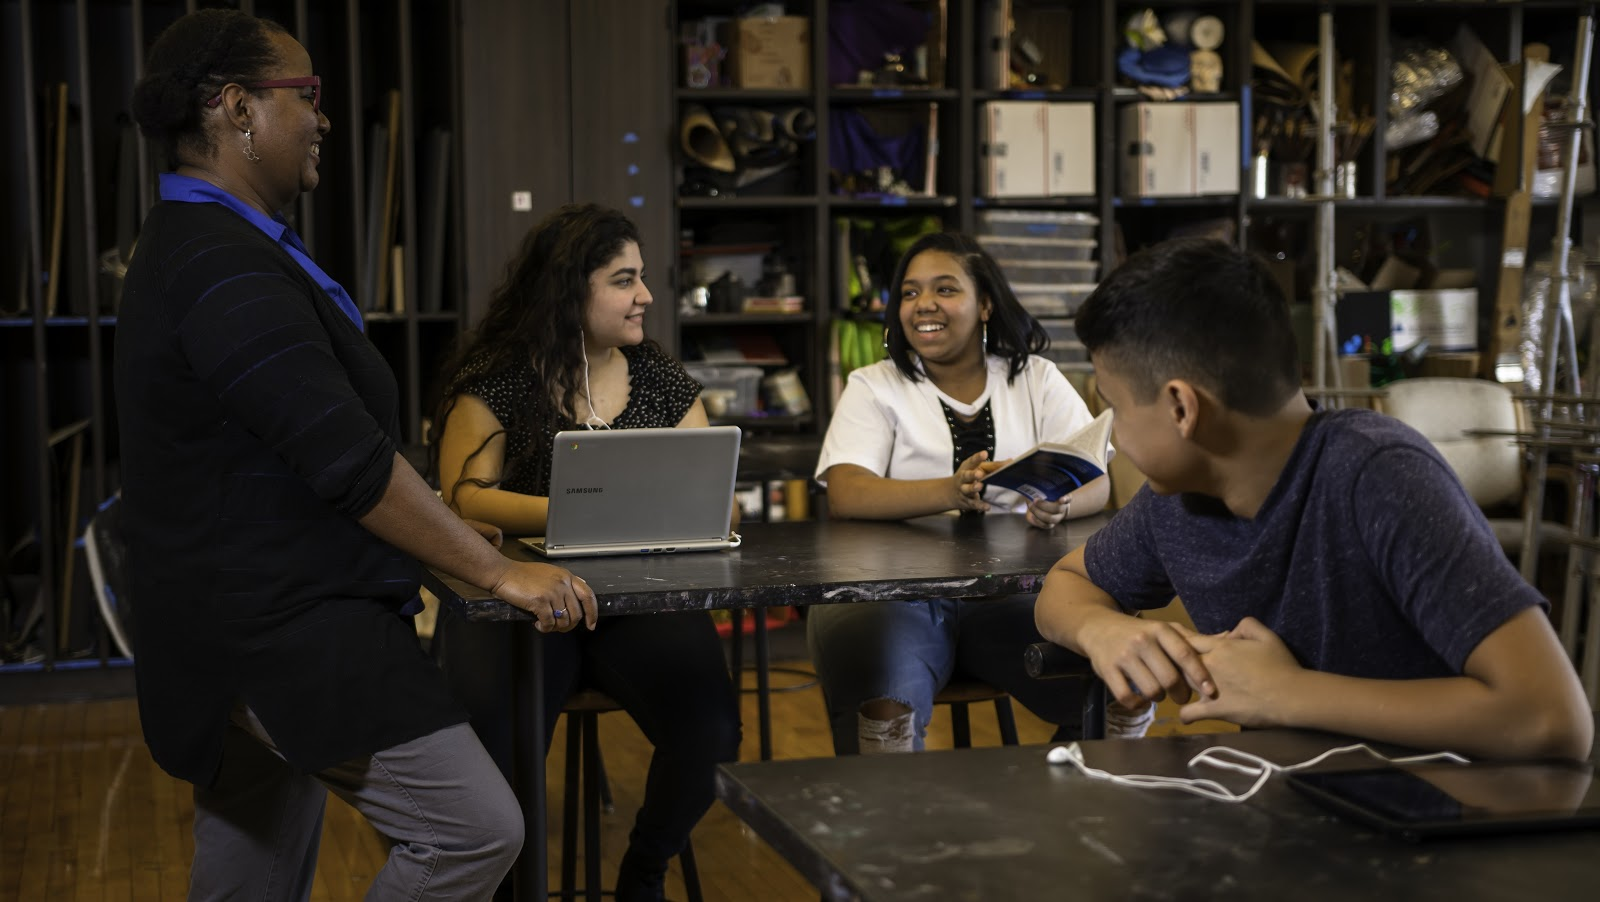 Three students interact with a teacher in a classroom